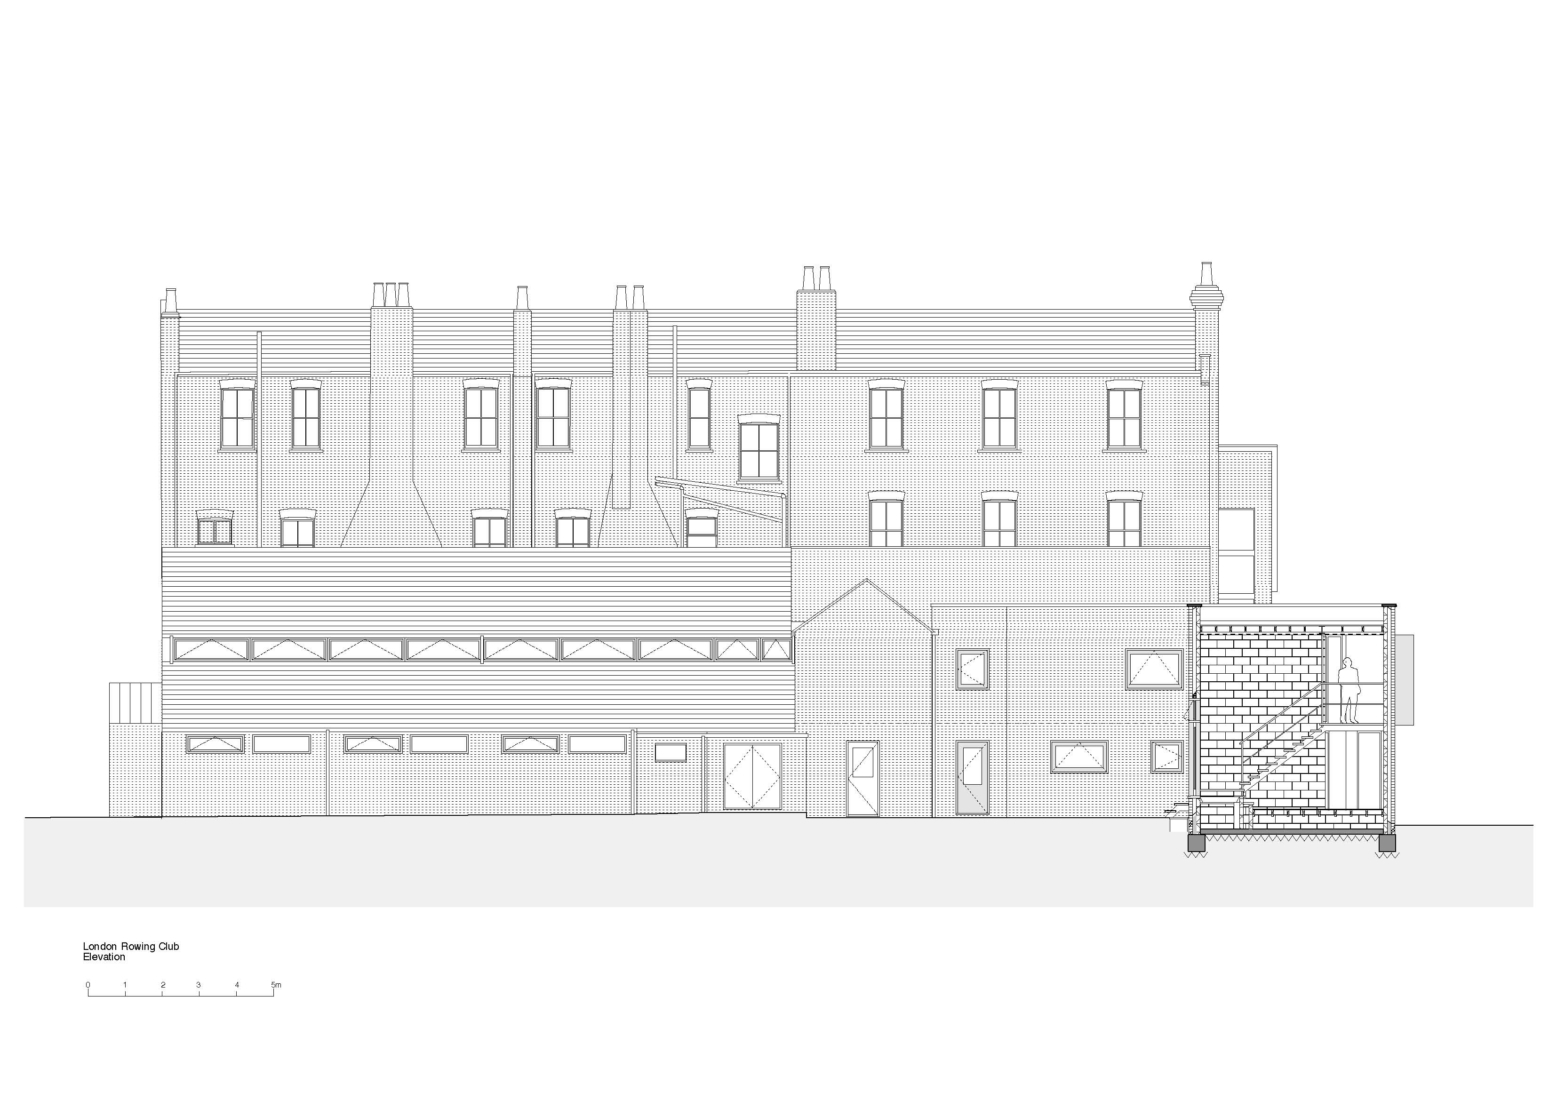 London Rowing Club elevation